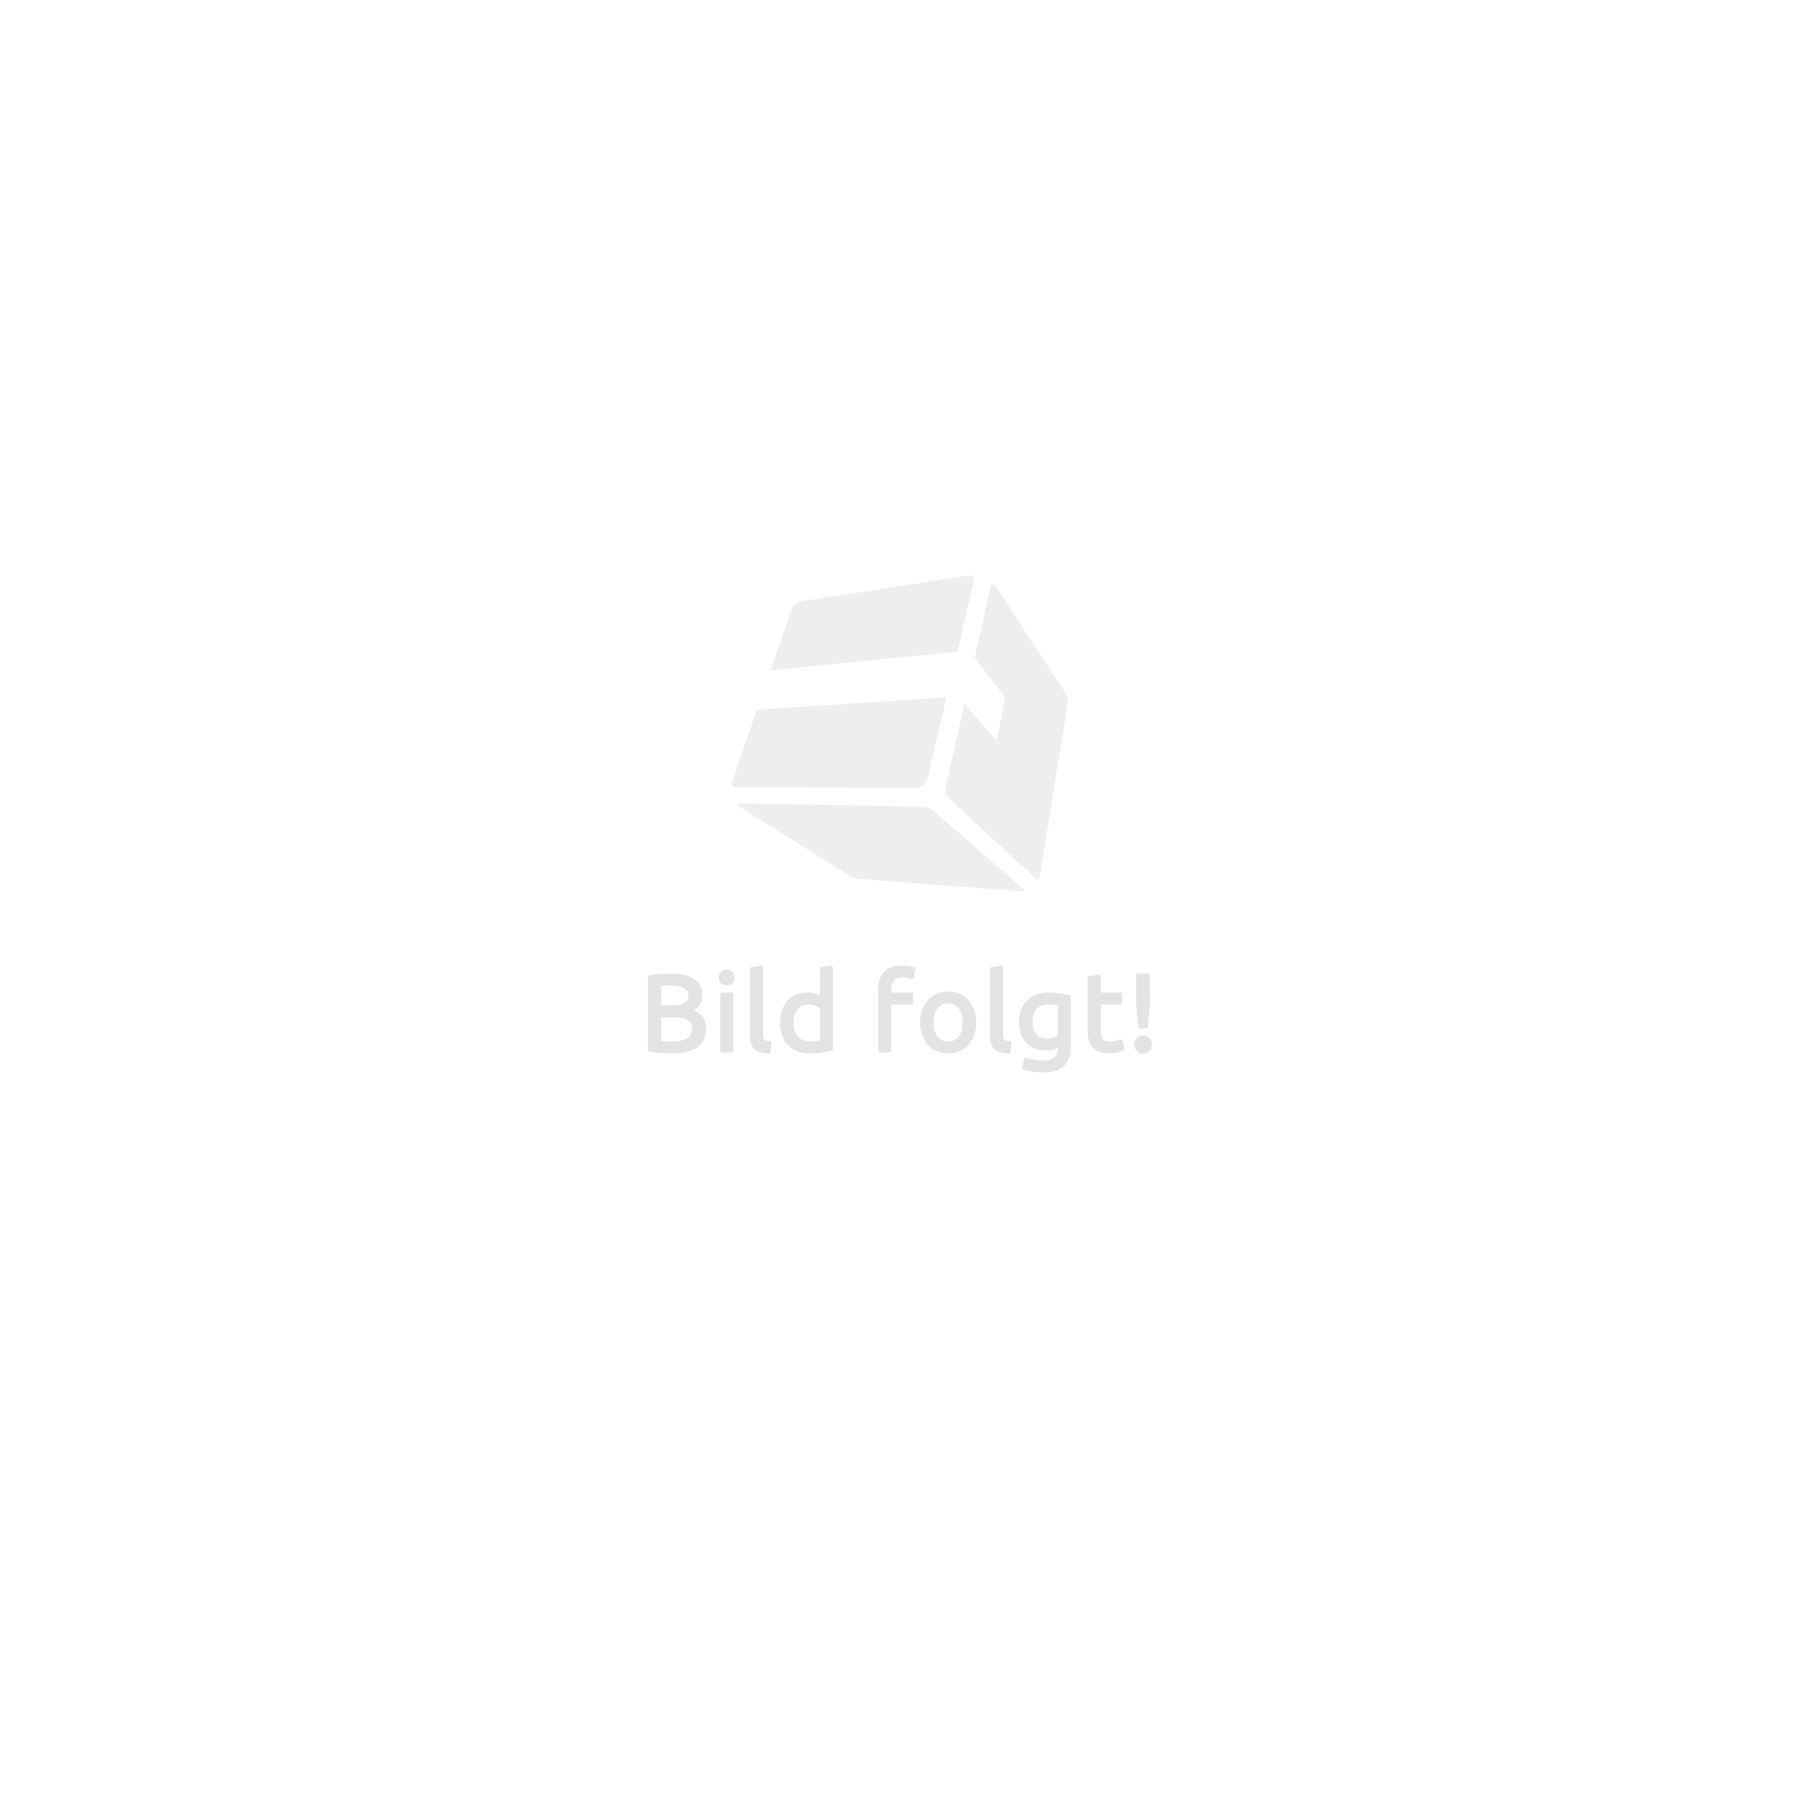 Soporte de pared para monitores de 26-55″ (66-138cm) inclinable y orientable